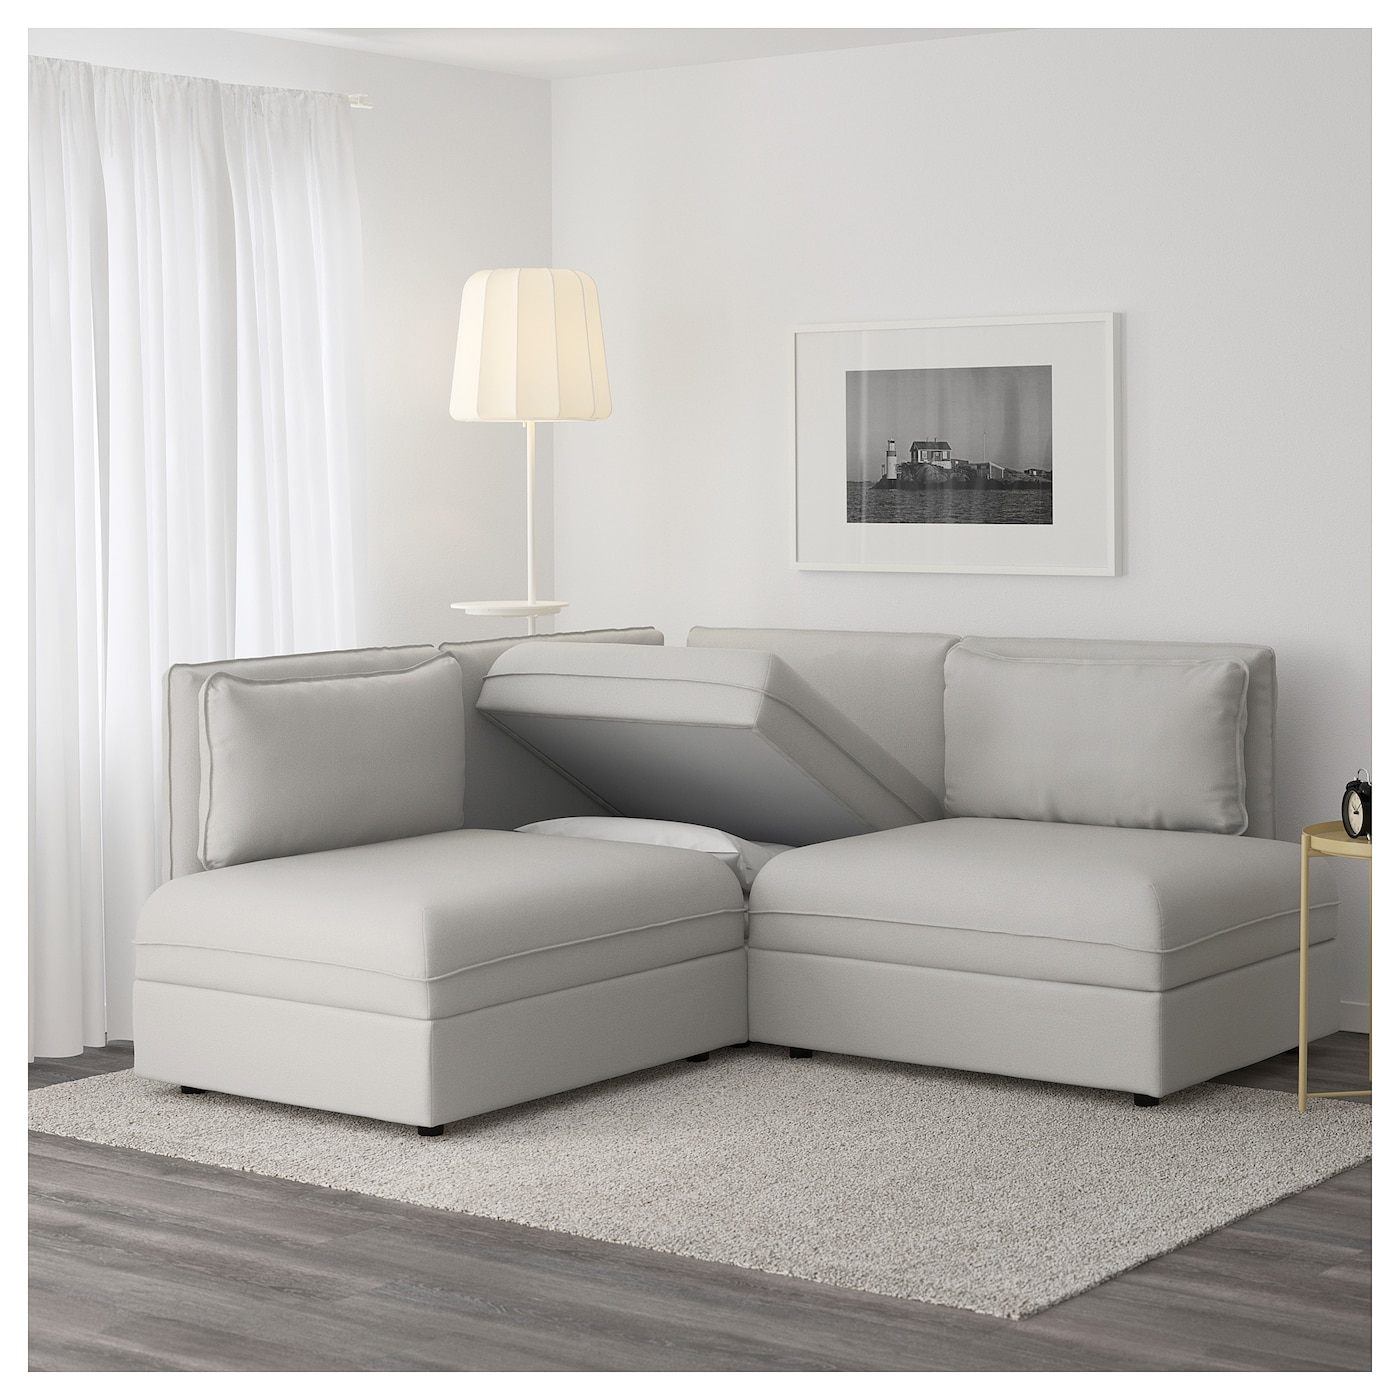 IKEA VALLENTUNA 3 Seat Corner Sofa With Bed